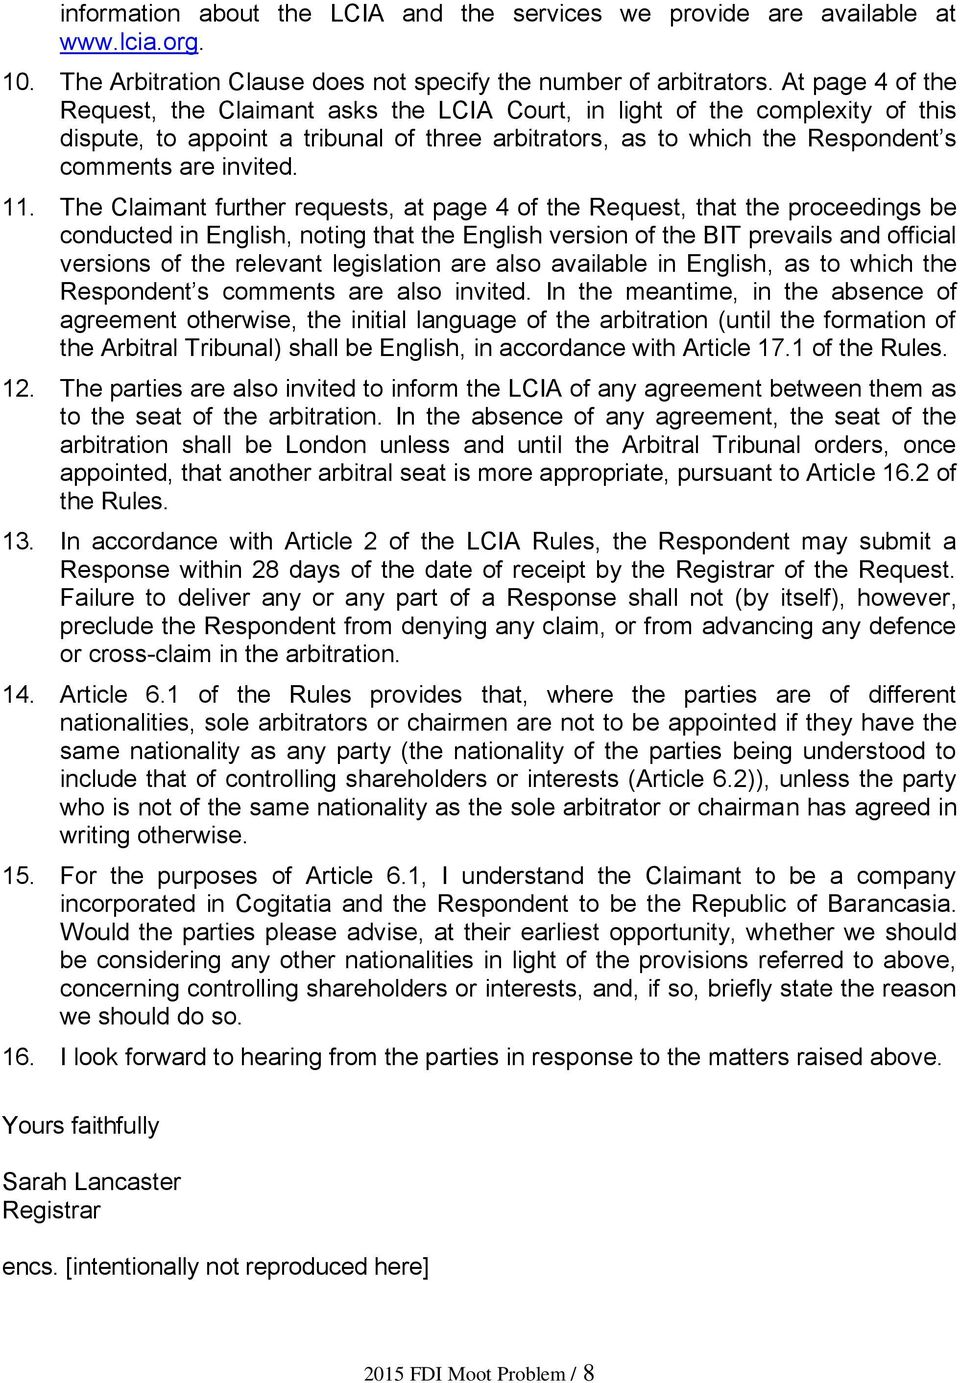 11. The Claimant further requests, at page 4 of the Request, that the proceedings be conducted in English, noting that the English version of the BIT prevails and official versions of the relevant